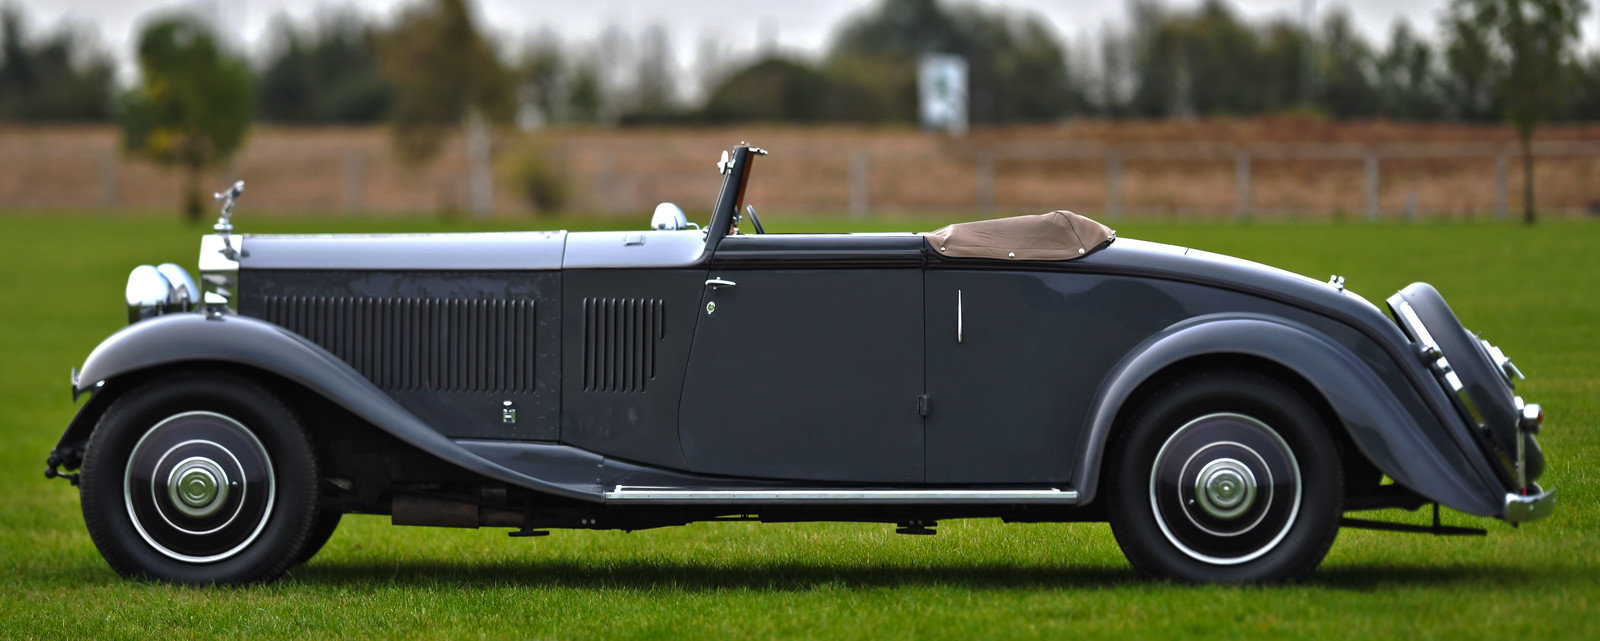 1932 Rolls-Royce Phantom II Continental Drophead Coupe by Ca For Sale (picture 2 of 6)